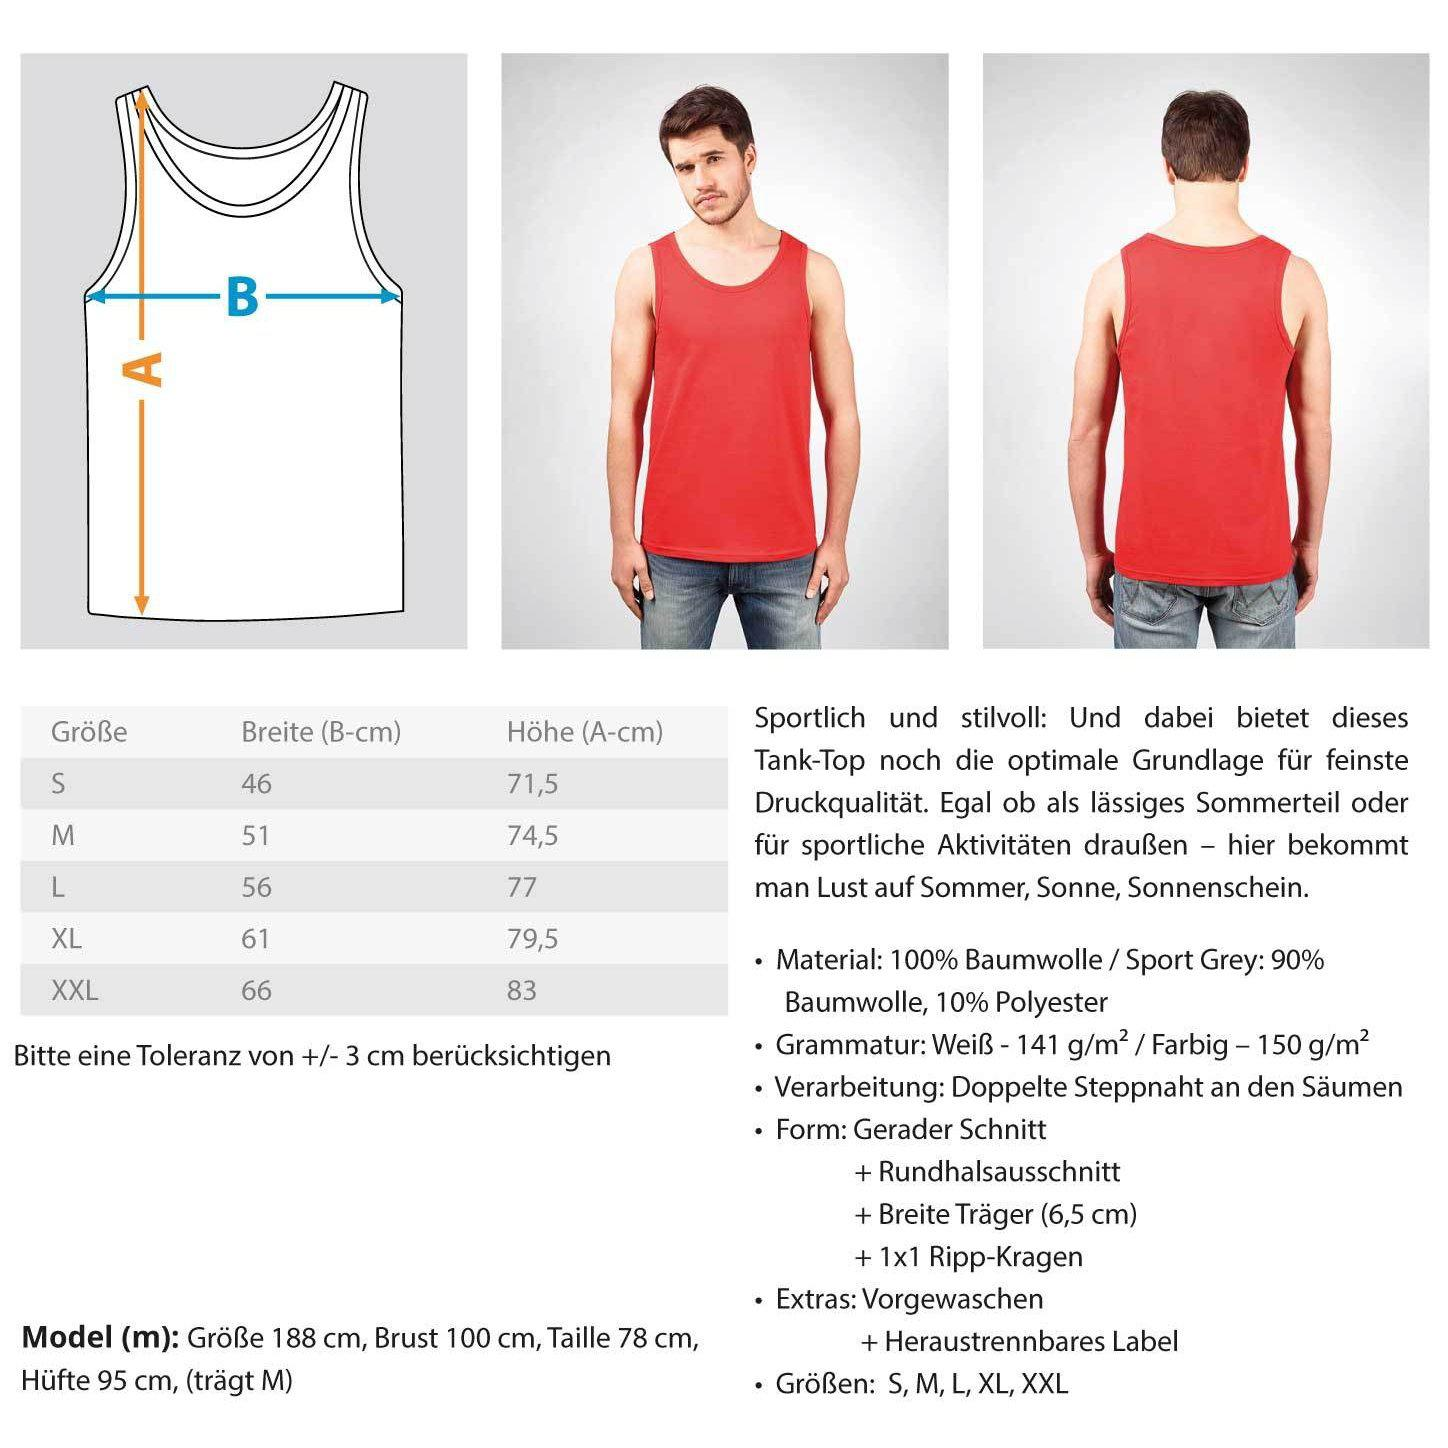 ACID HOUSE -Rave On!® - Herren Tanktop Herren Tank-Top - Rave On!® der Club & Techno Szene Shop für Coole Junge Mode Streetwear Style & Fashion Outfits + Sexy Festival 420 Stuff